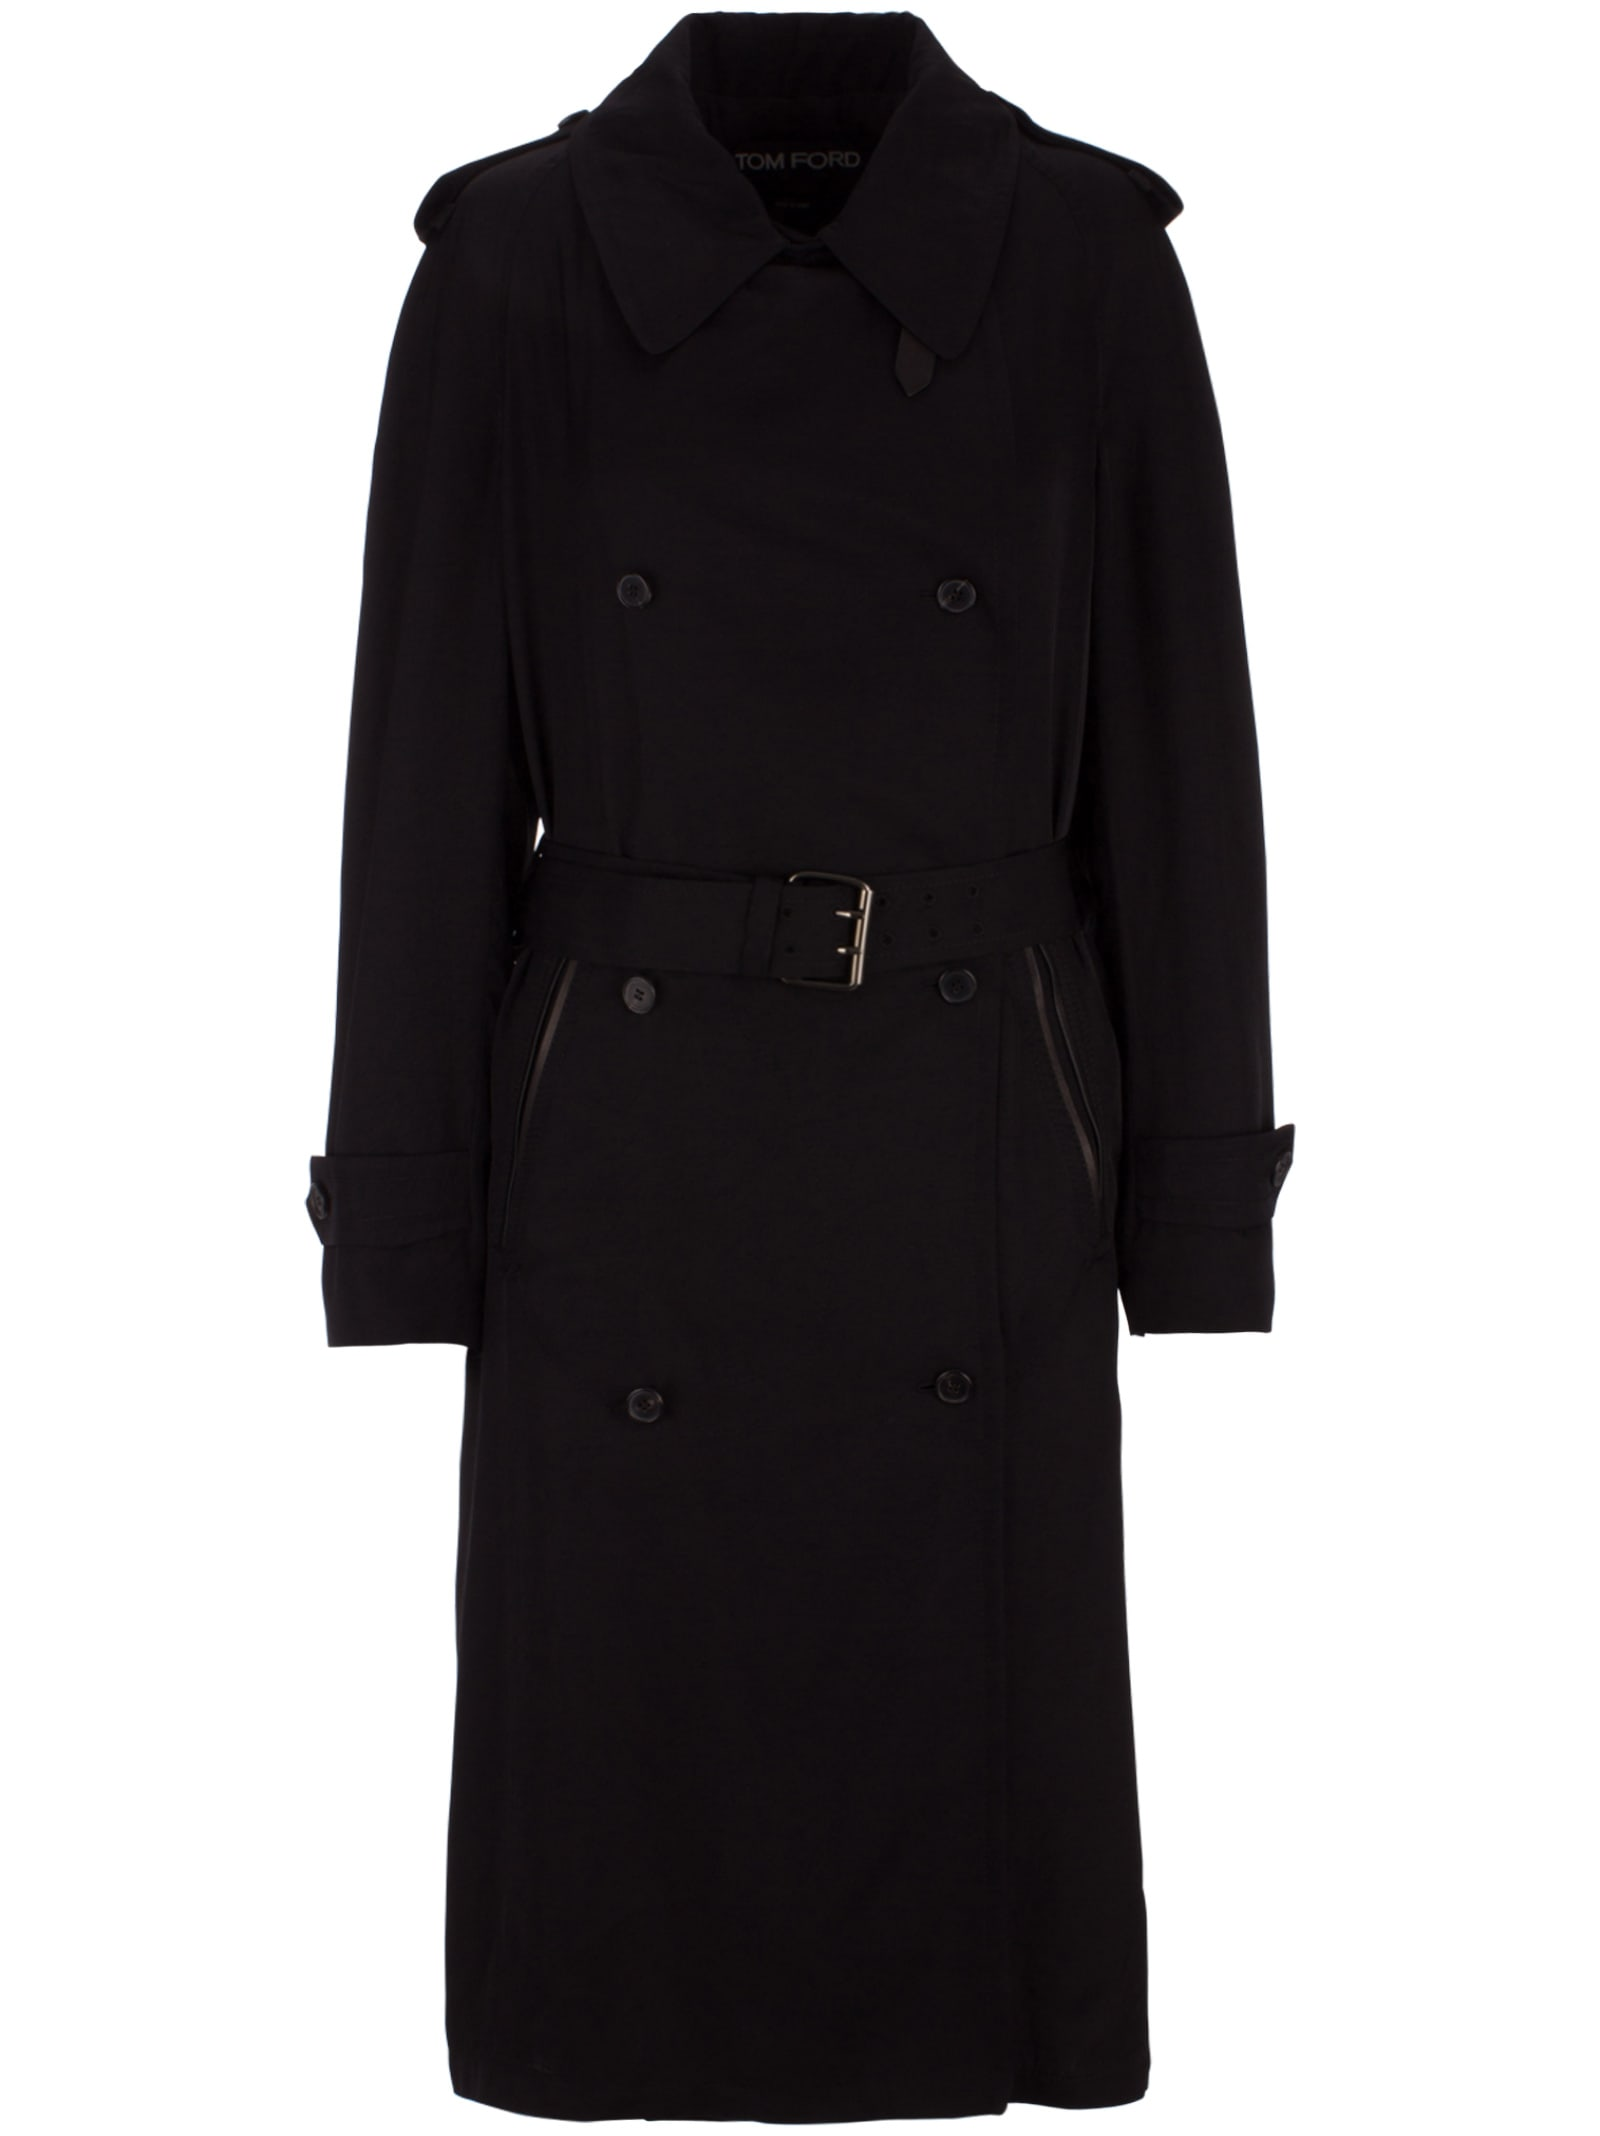 Photo of  Tom Ford Trench- shop Tom Ford jackets online sales